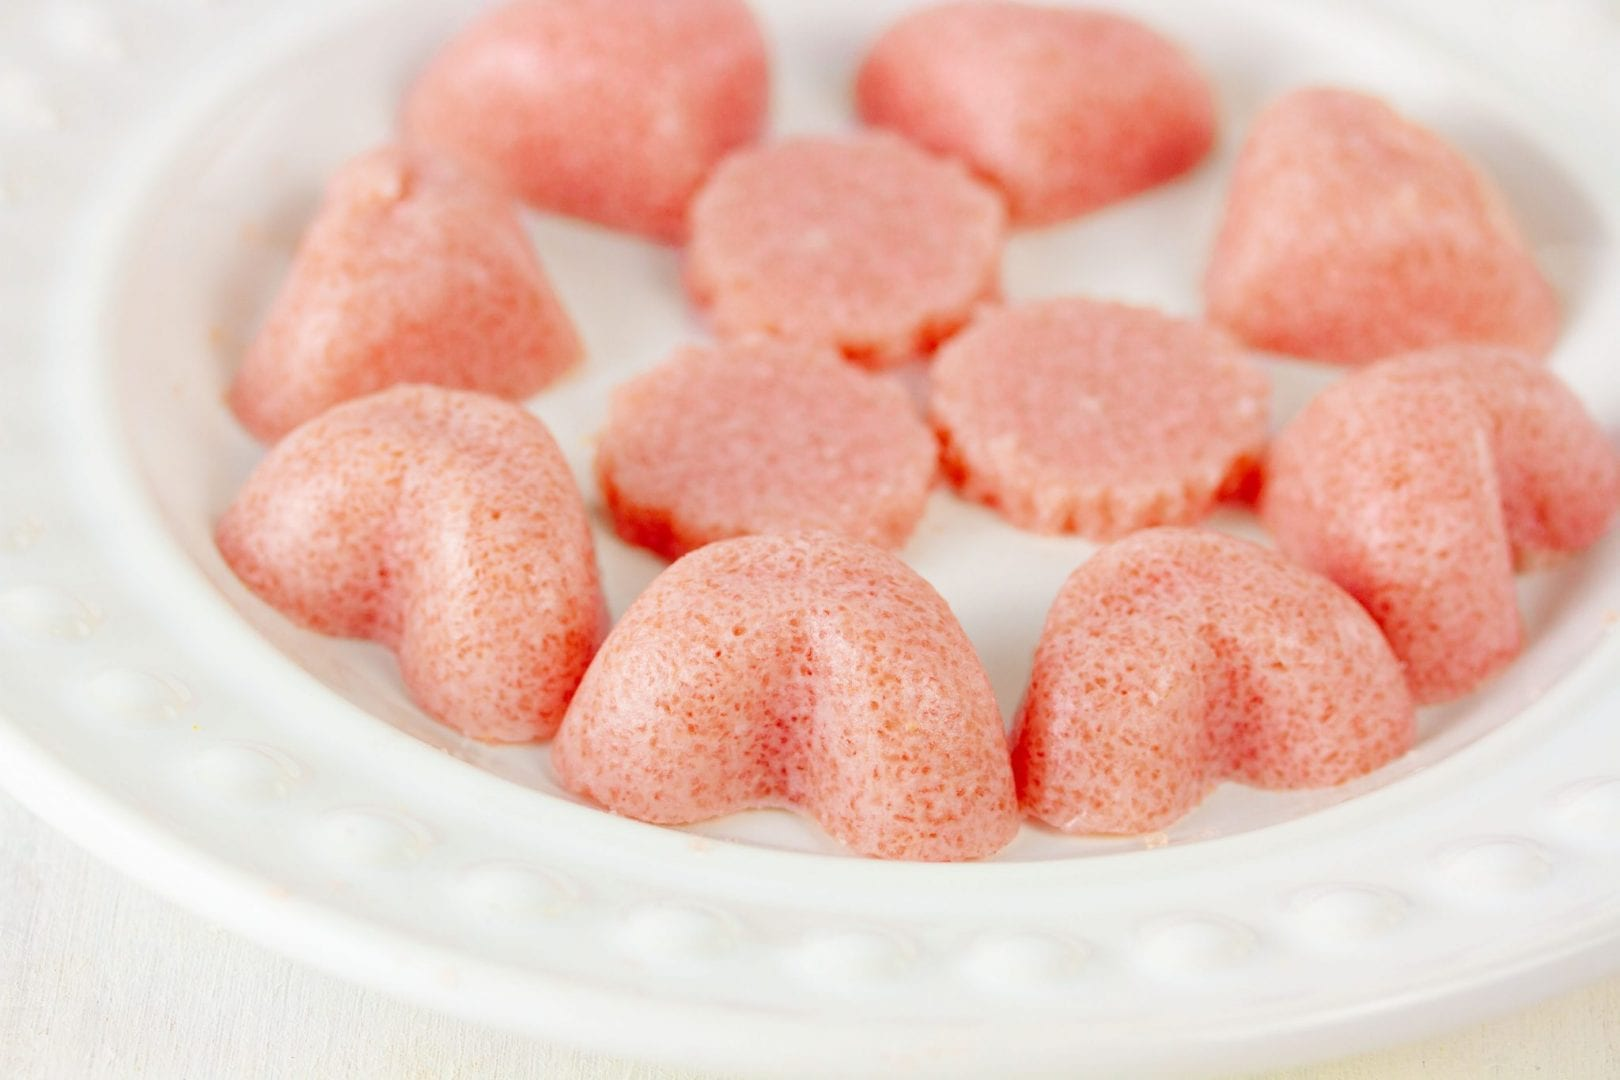 Raspberry gummies - enjoy making these simple homemade raspberry gummies with your kids